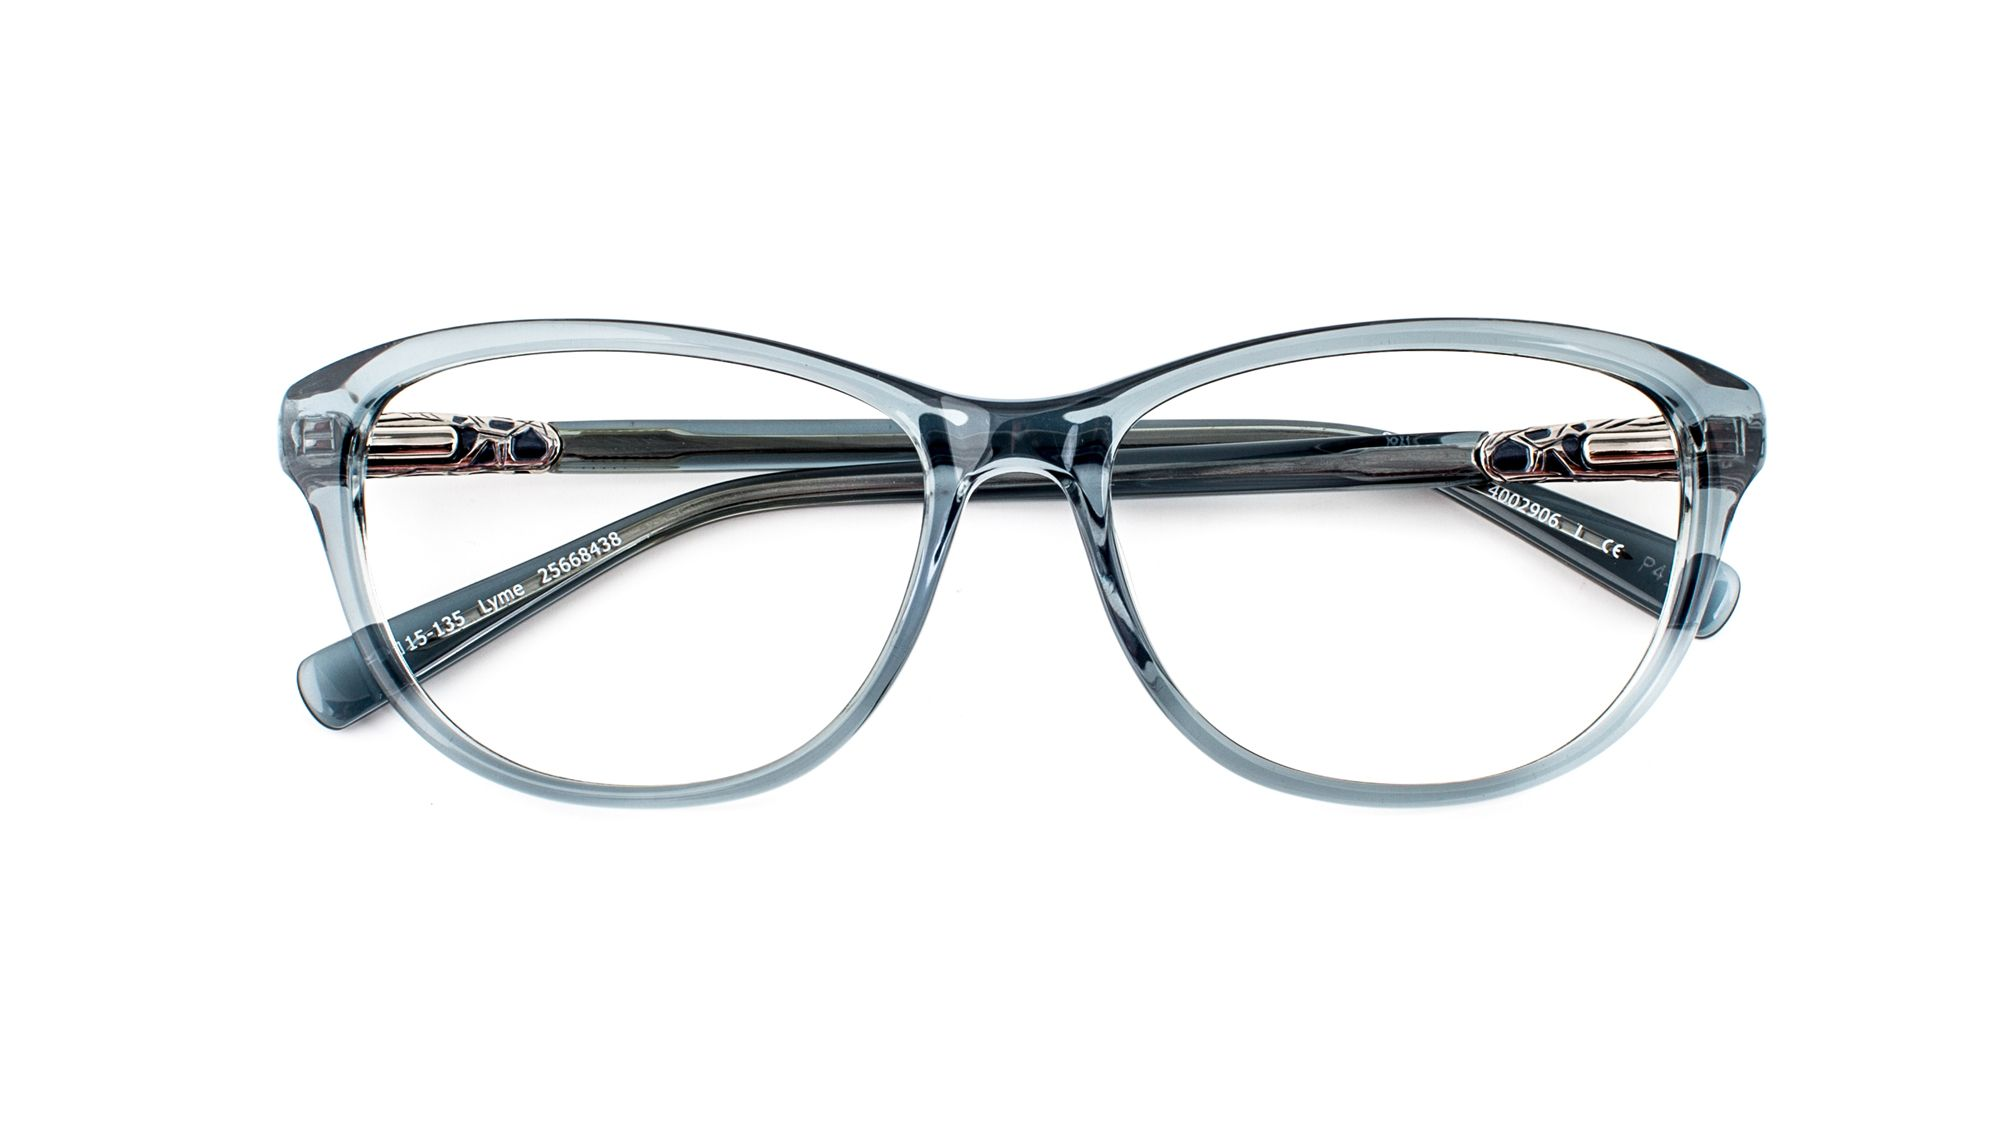 LYME Glasses by Specsavers | Specsavers UK | Fashion | Pinterest